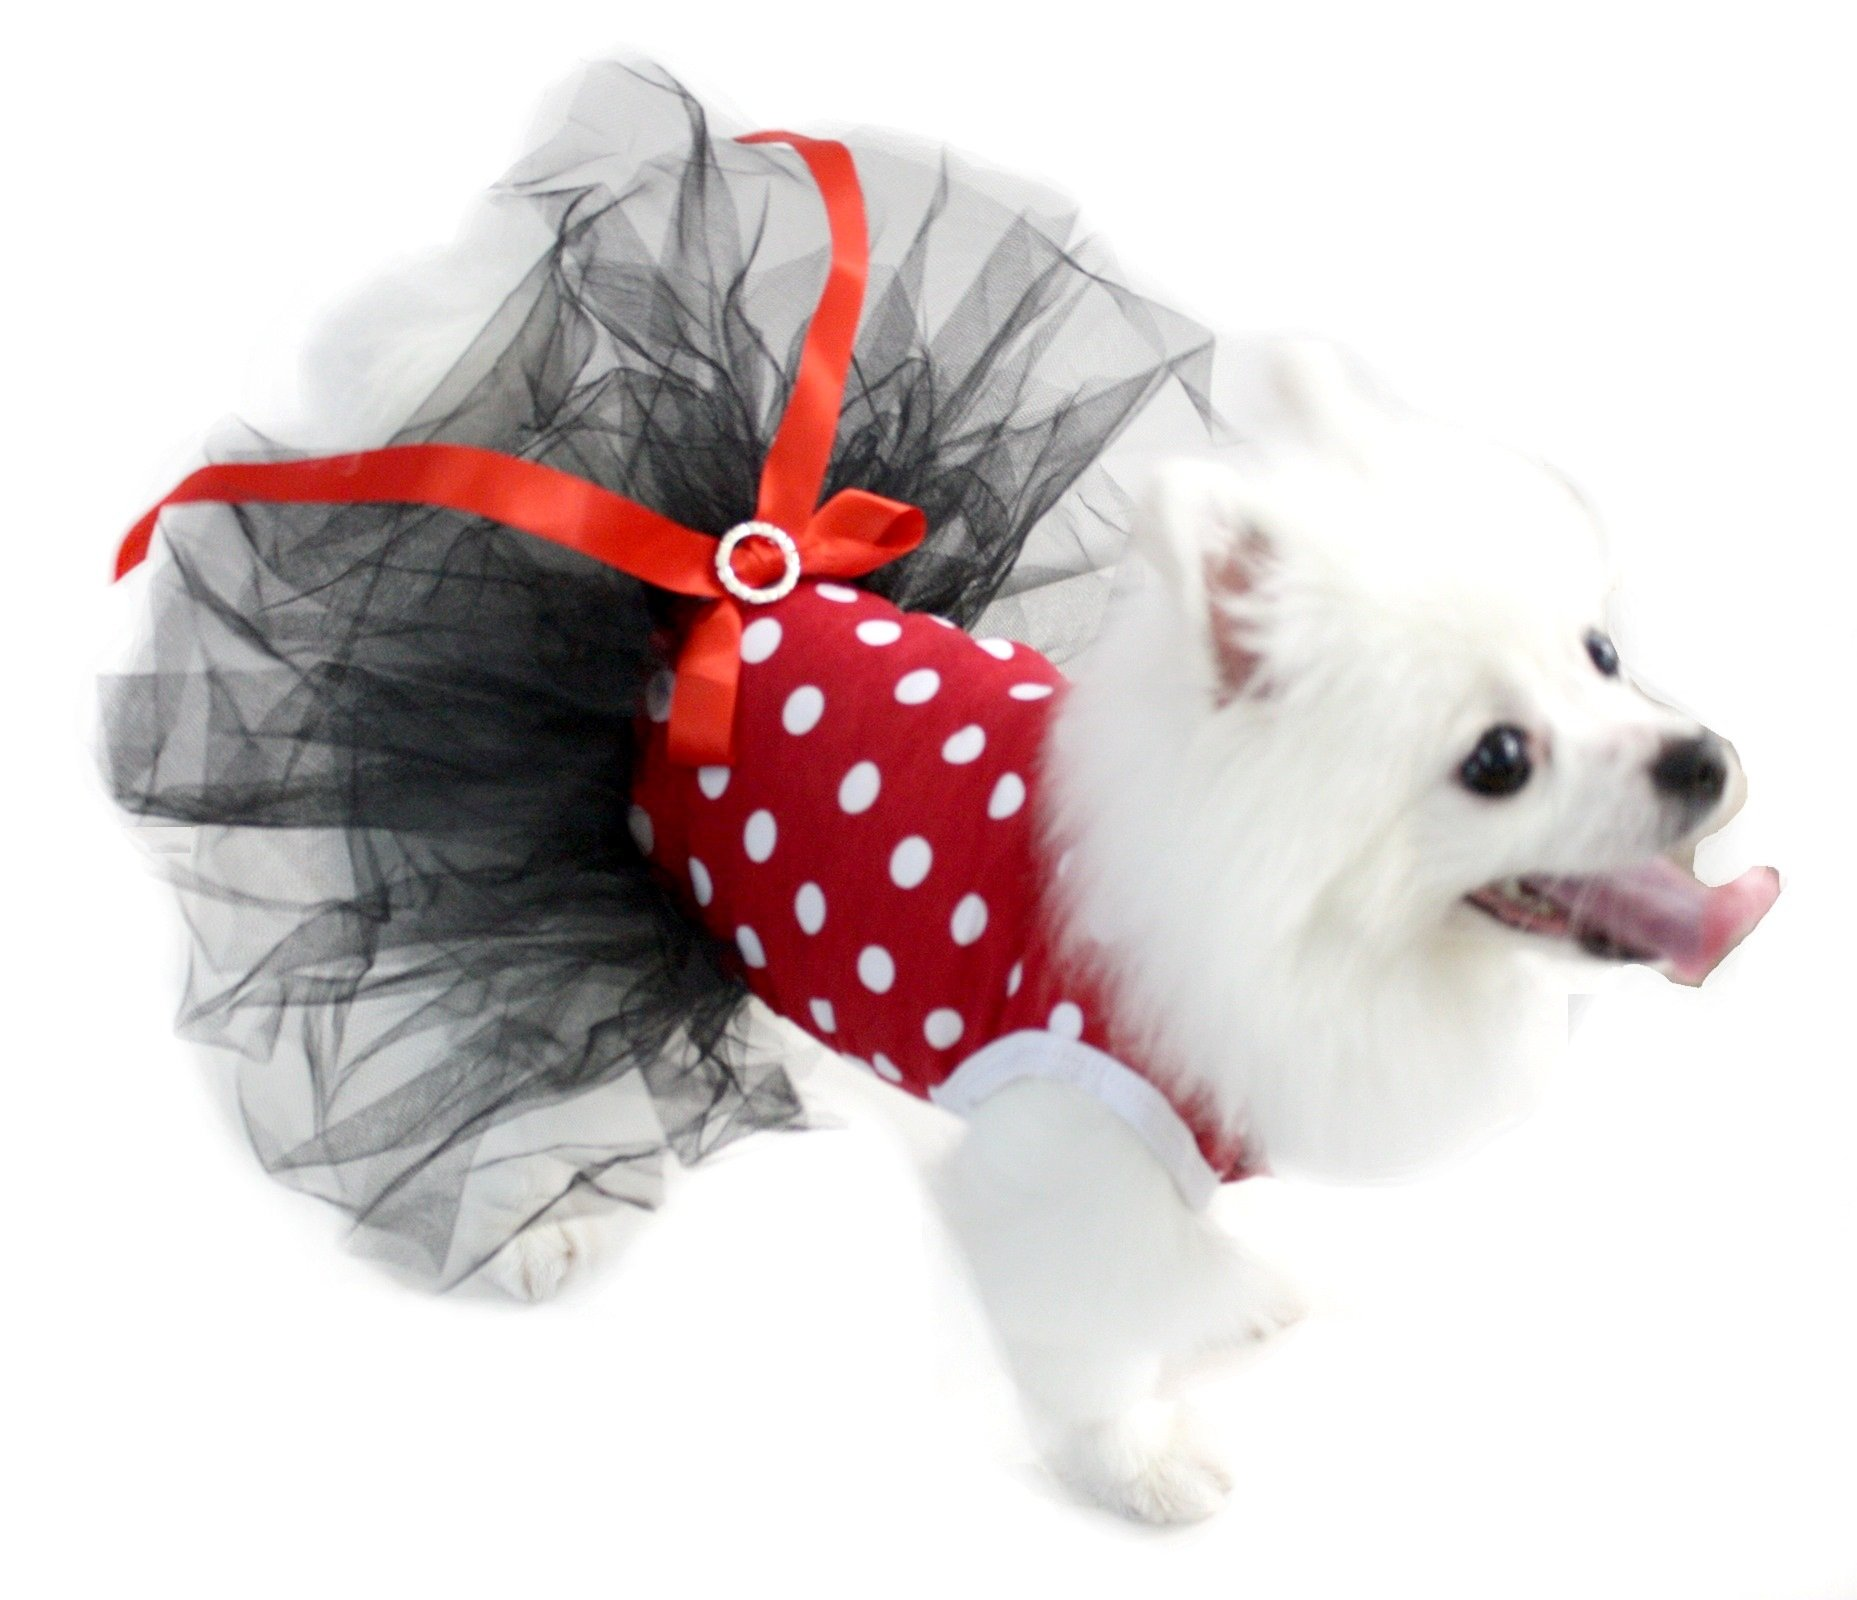 Puppy Clothes Dog Dress Red White Polka Dots Cotton Top Black Tutu Animal Wear (Small)